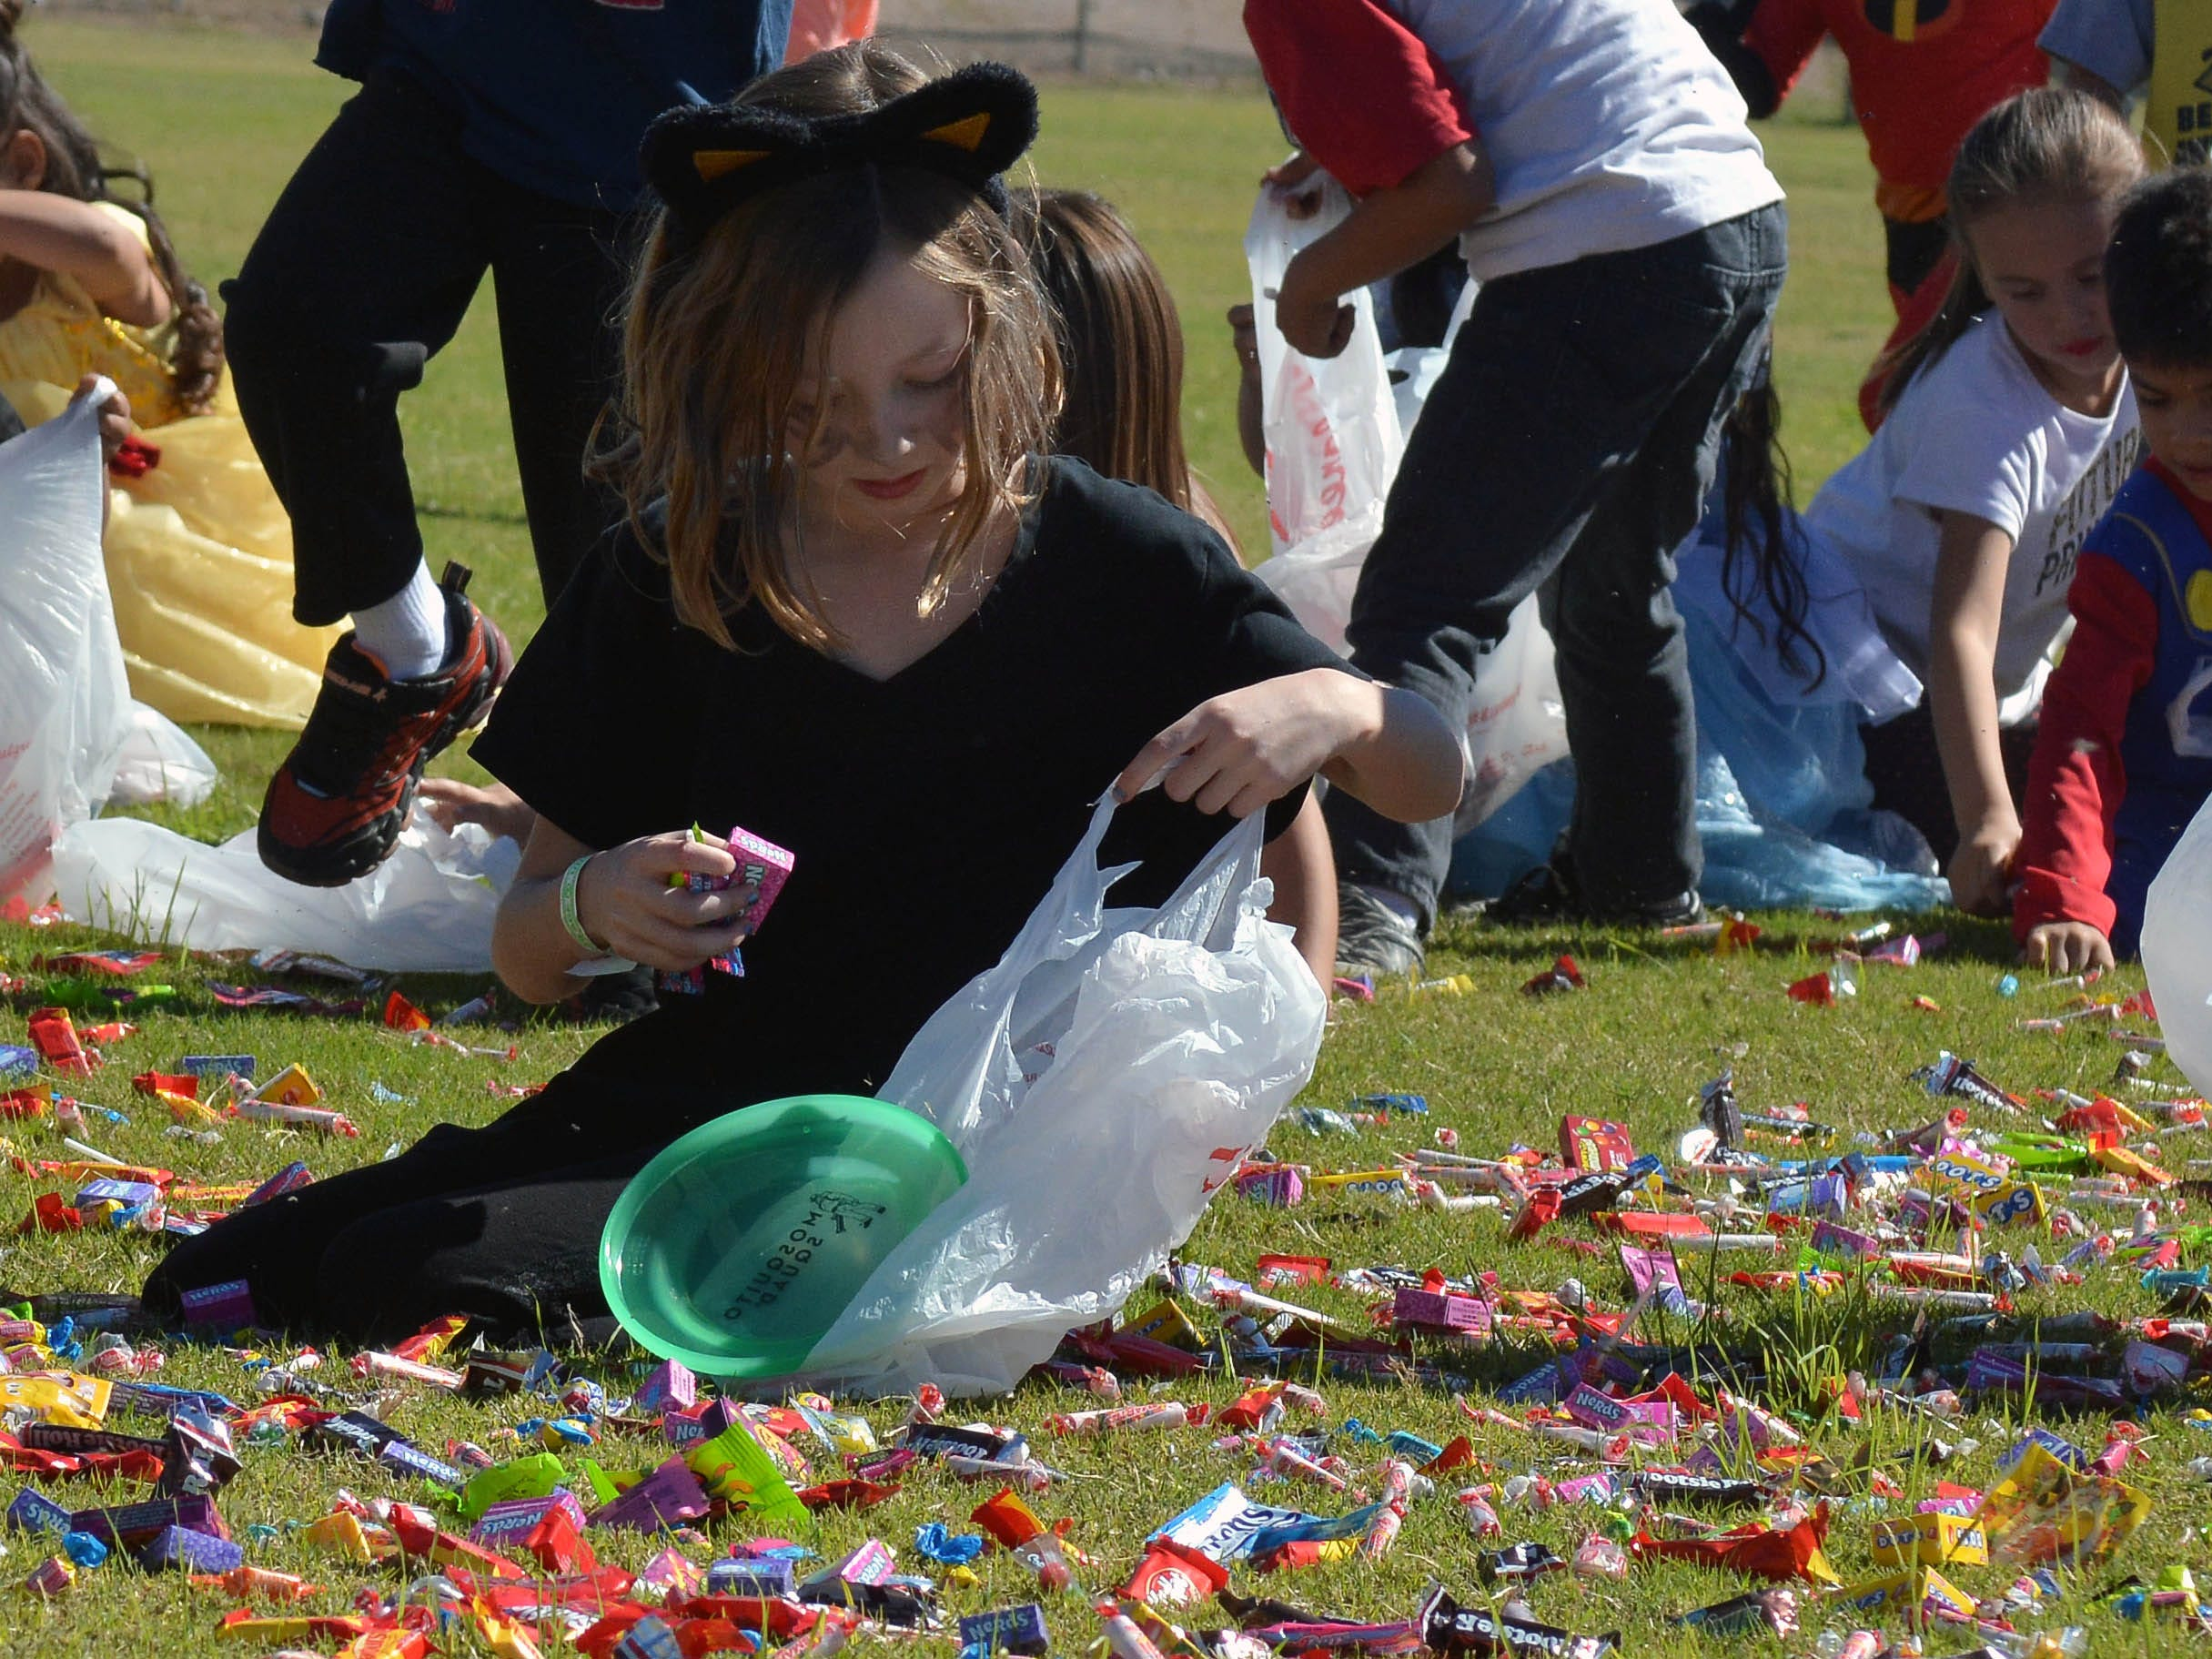 Rebyl Brewer, 6, fills her bag after finding a nice pile of candy during the 14th annual Great Pumpkin Candy Drop, held Sunday, Oct, 28 at Maag Park.